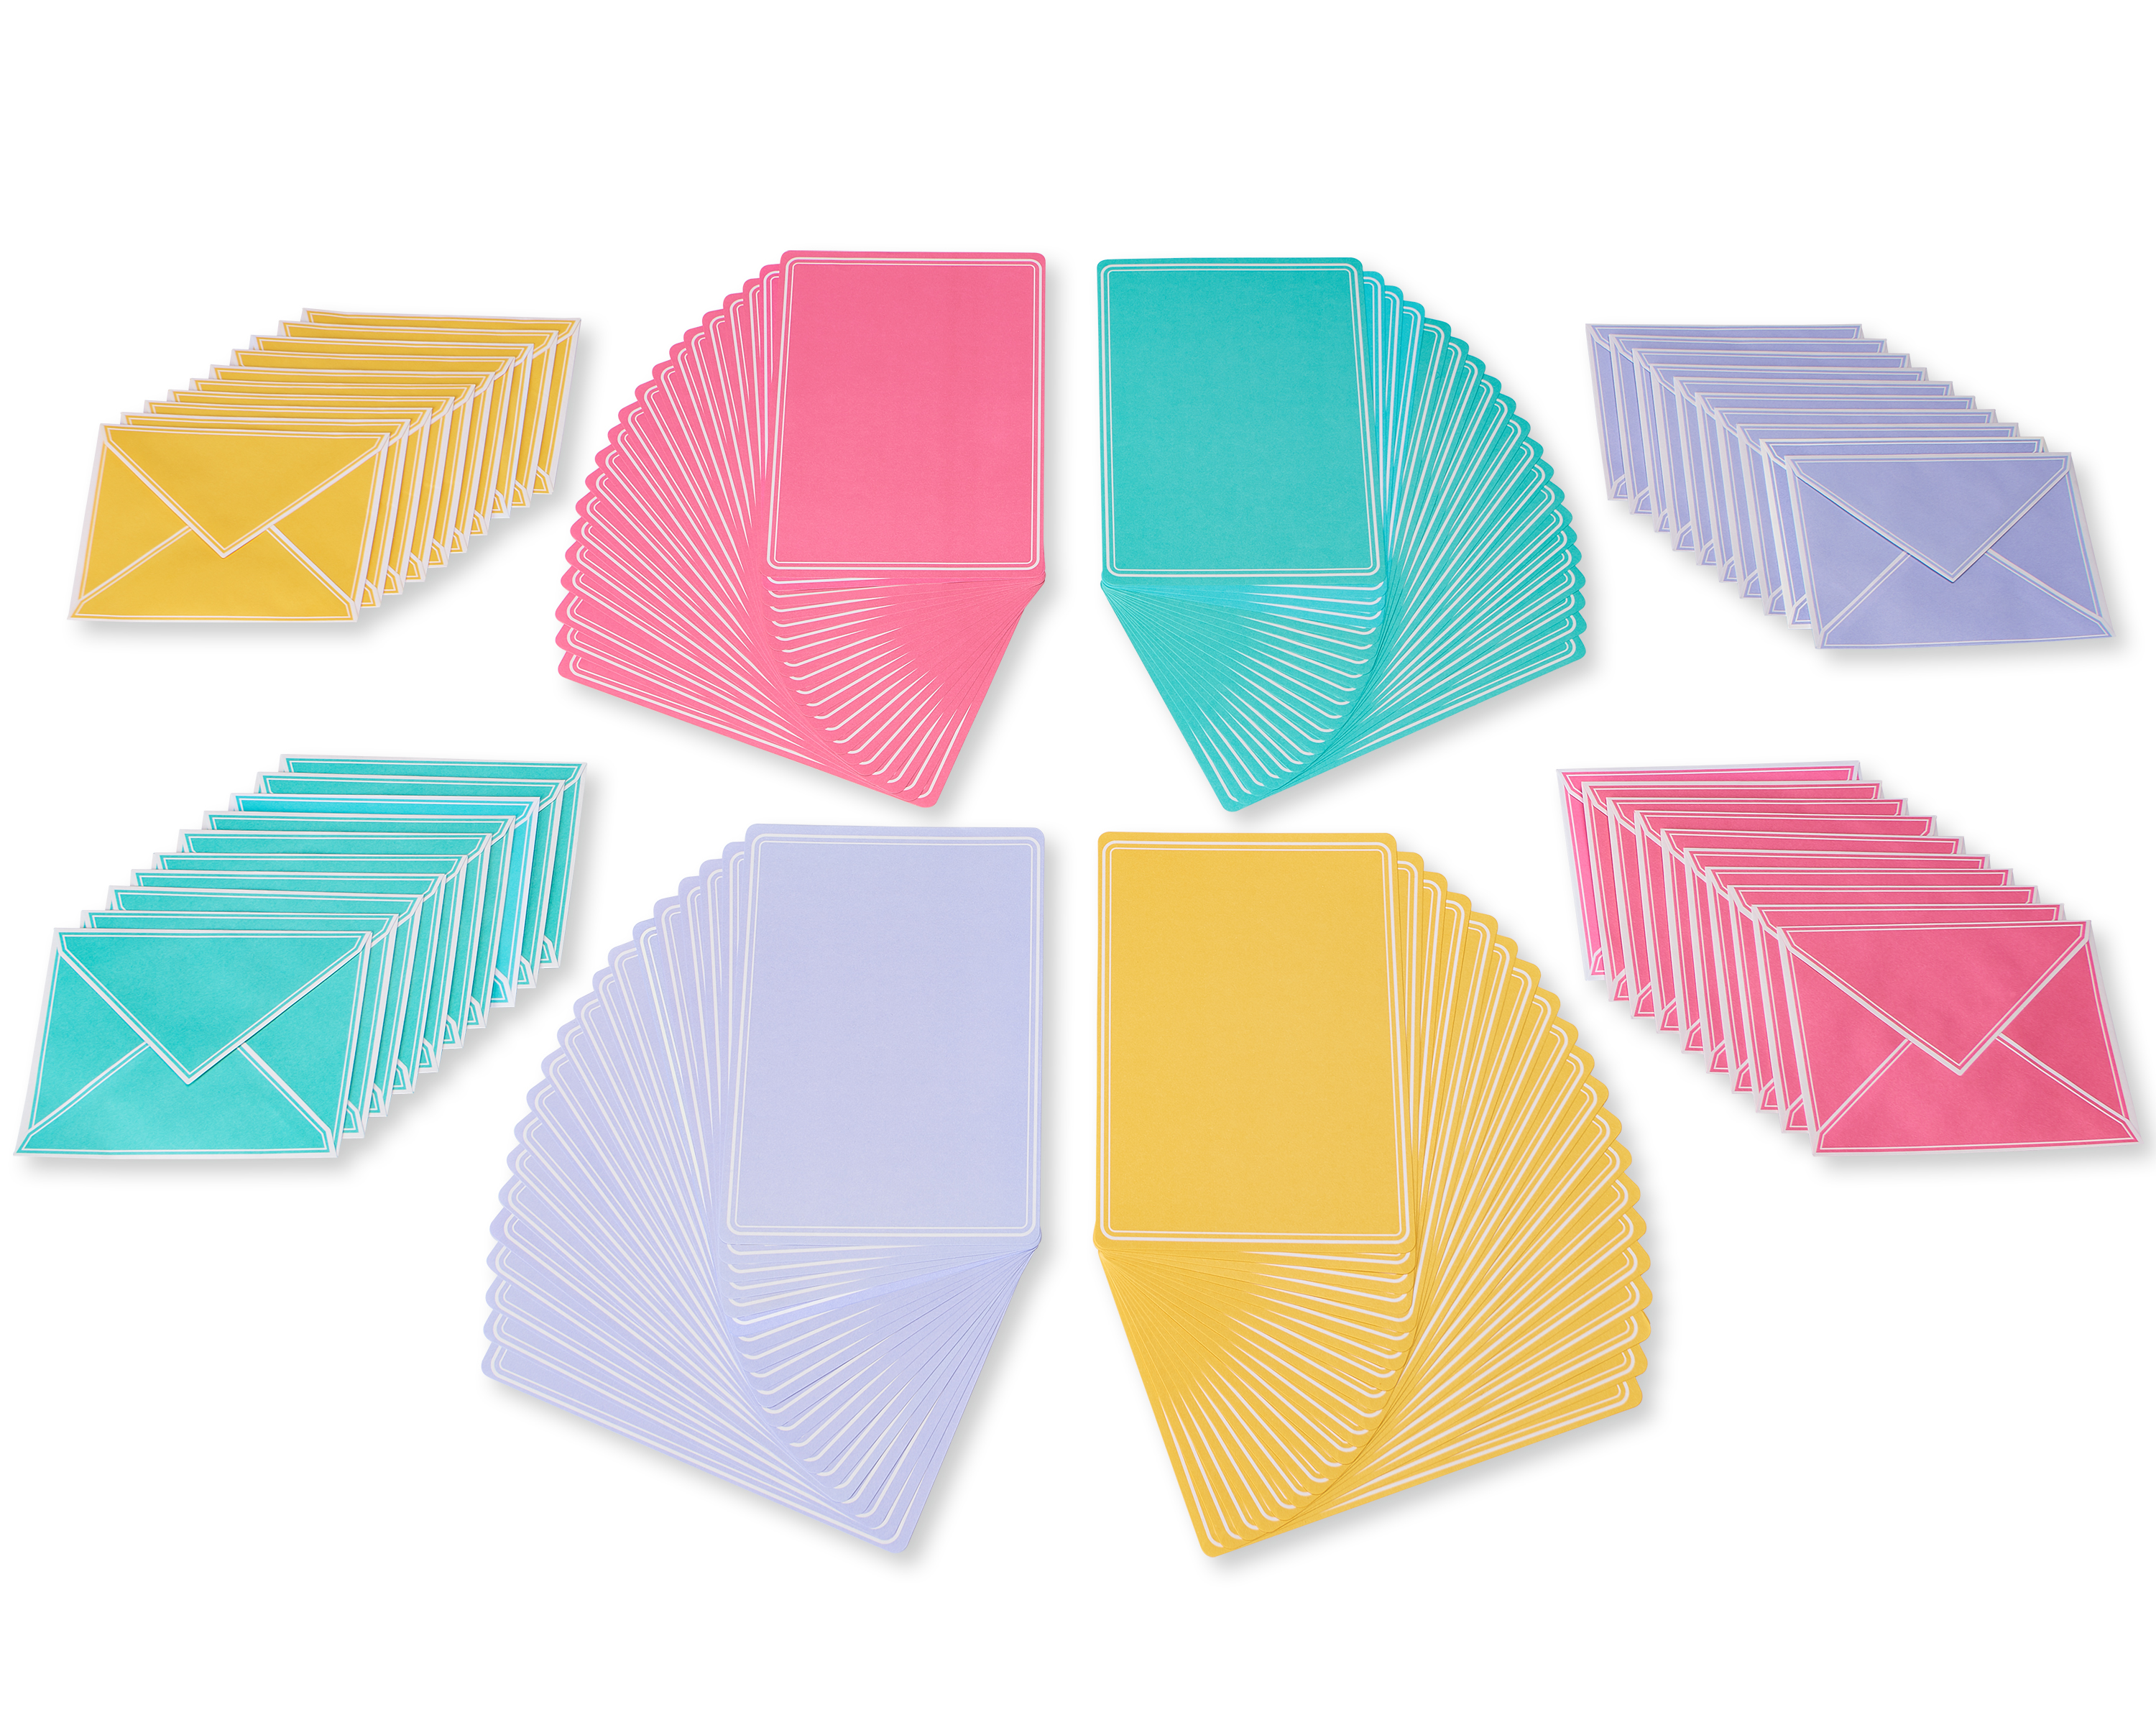 American Greetings Pastel Stationery Sheets And Colored Envelopes